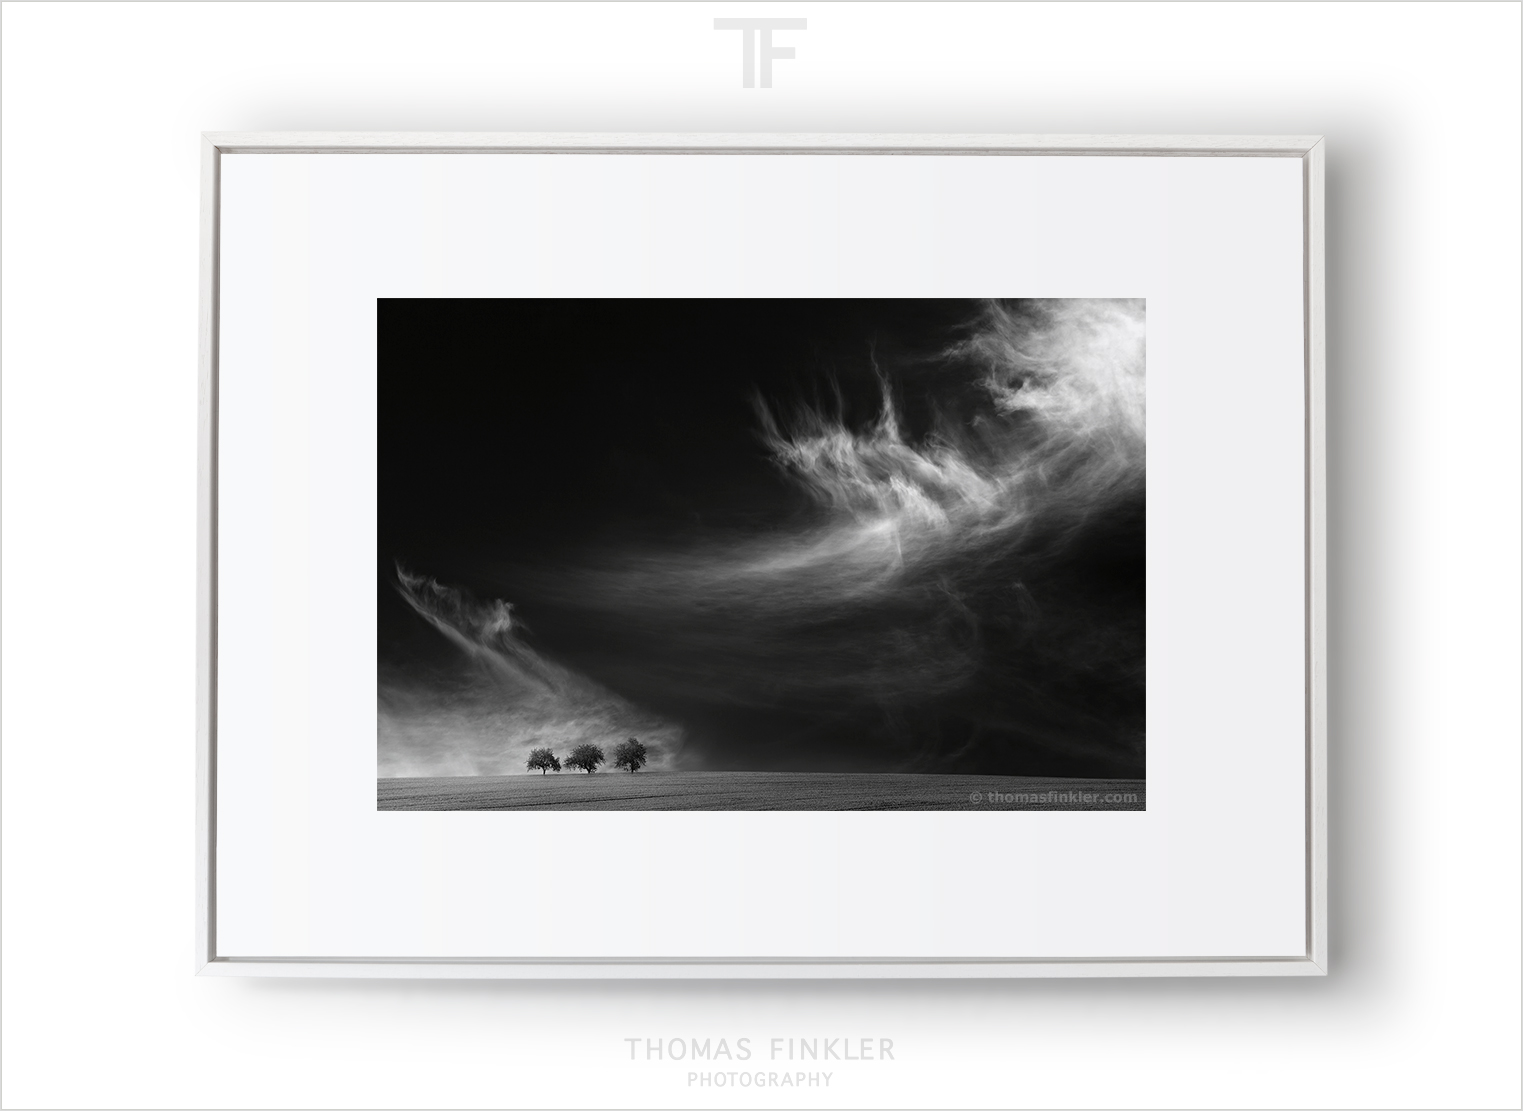 Fine Art Prints | Framed Artwork - Thomas Finkler Photography